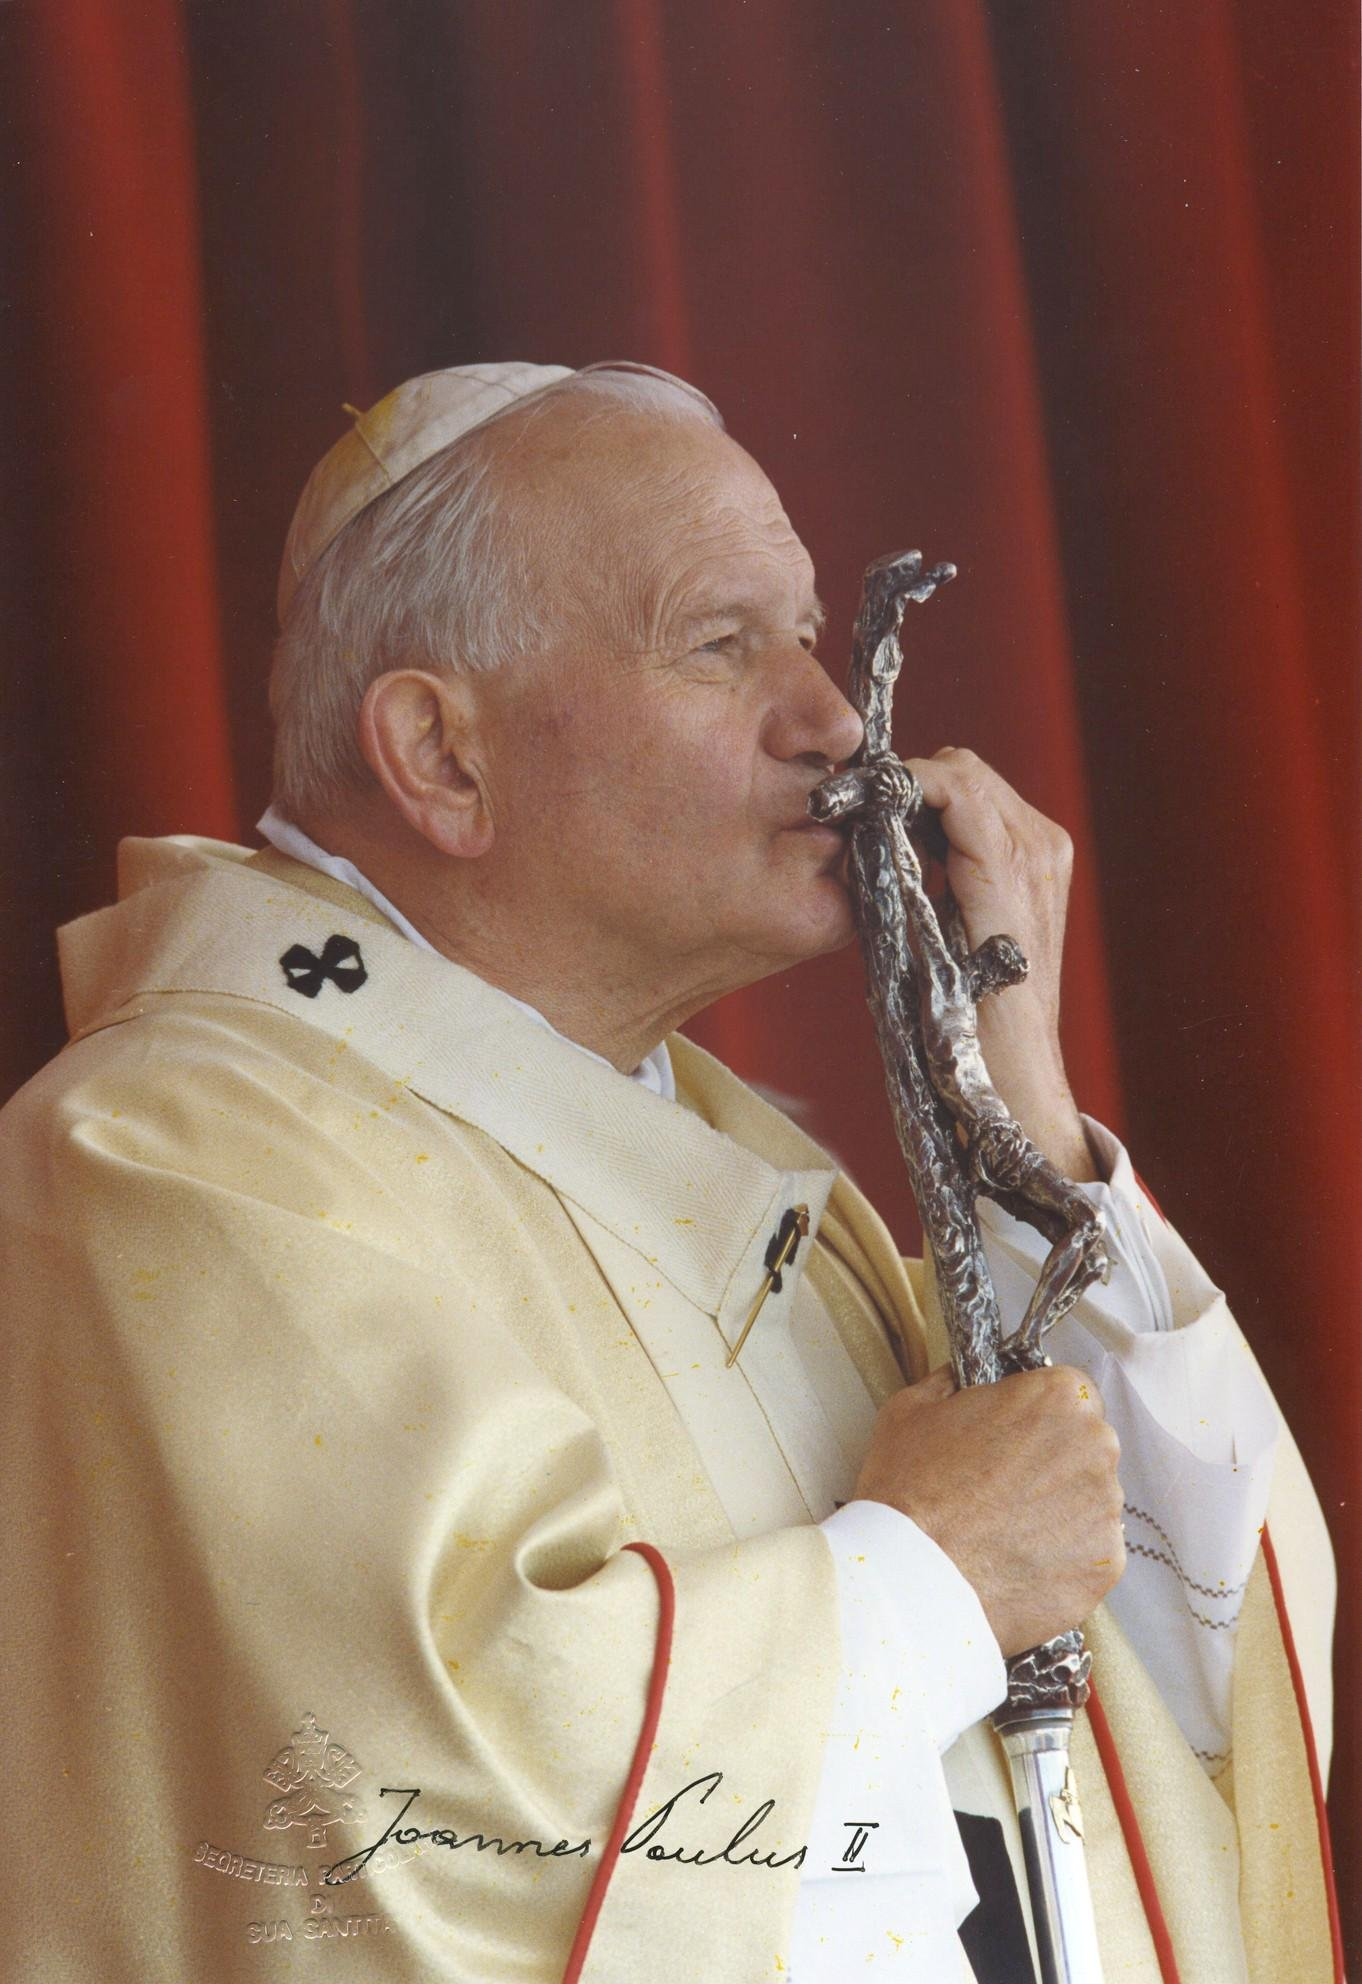 Pope John Paul II Fantastic Signed Photo with great